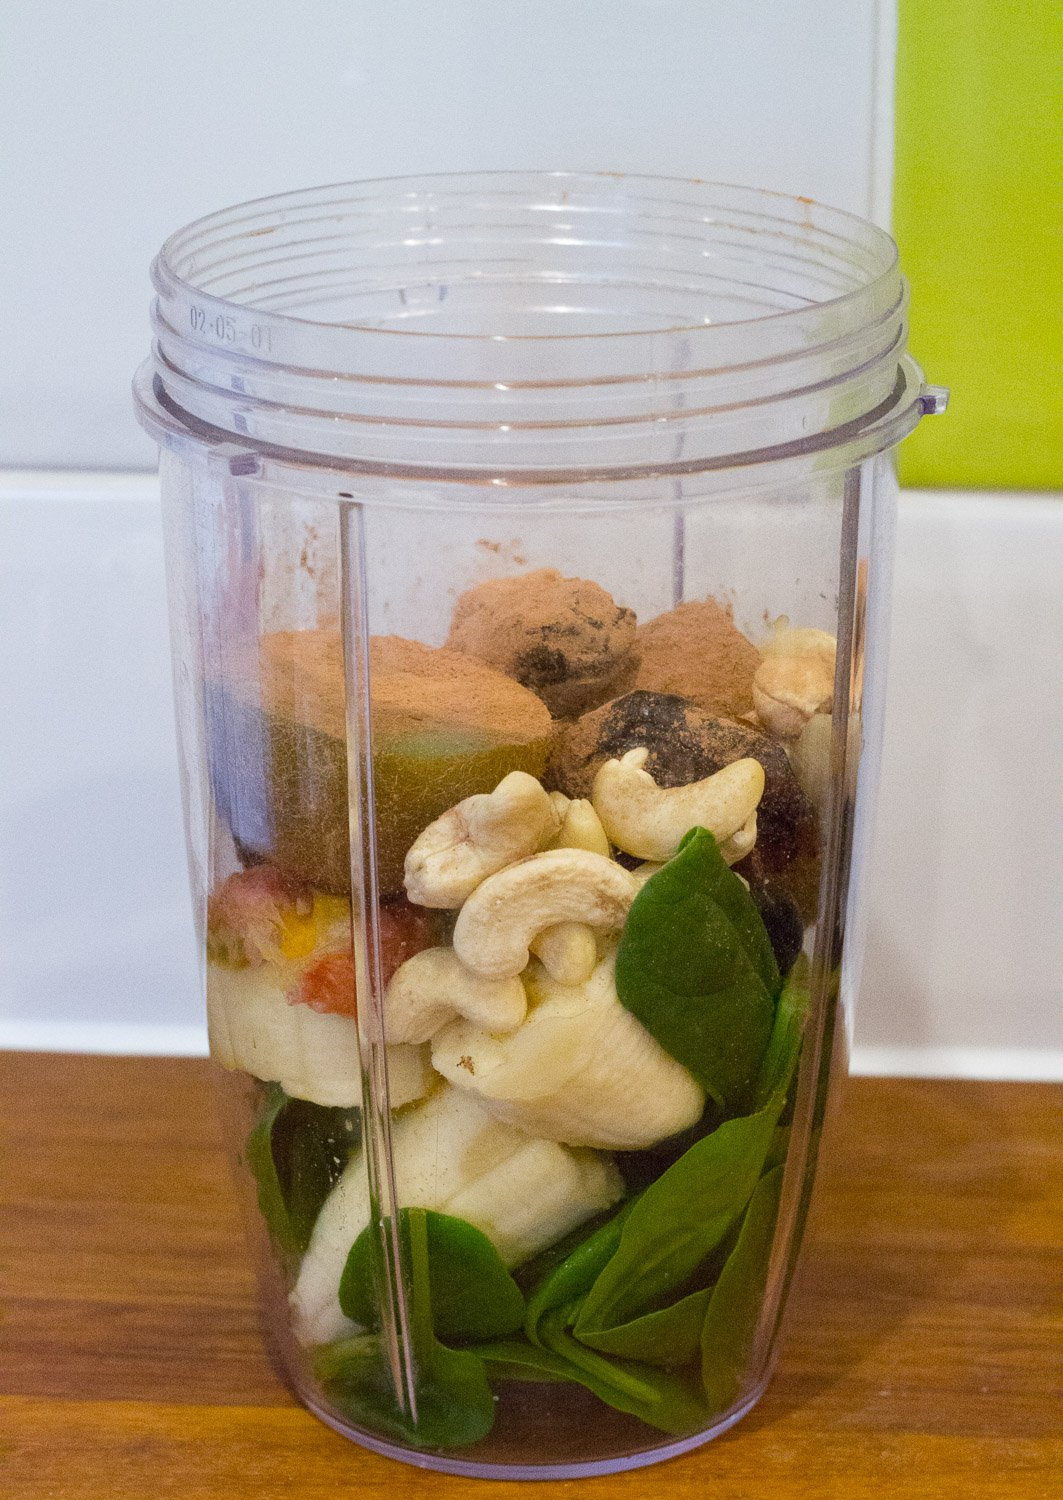 Deconstructed Nutriblast